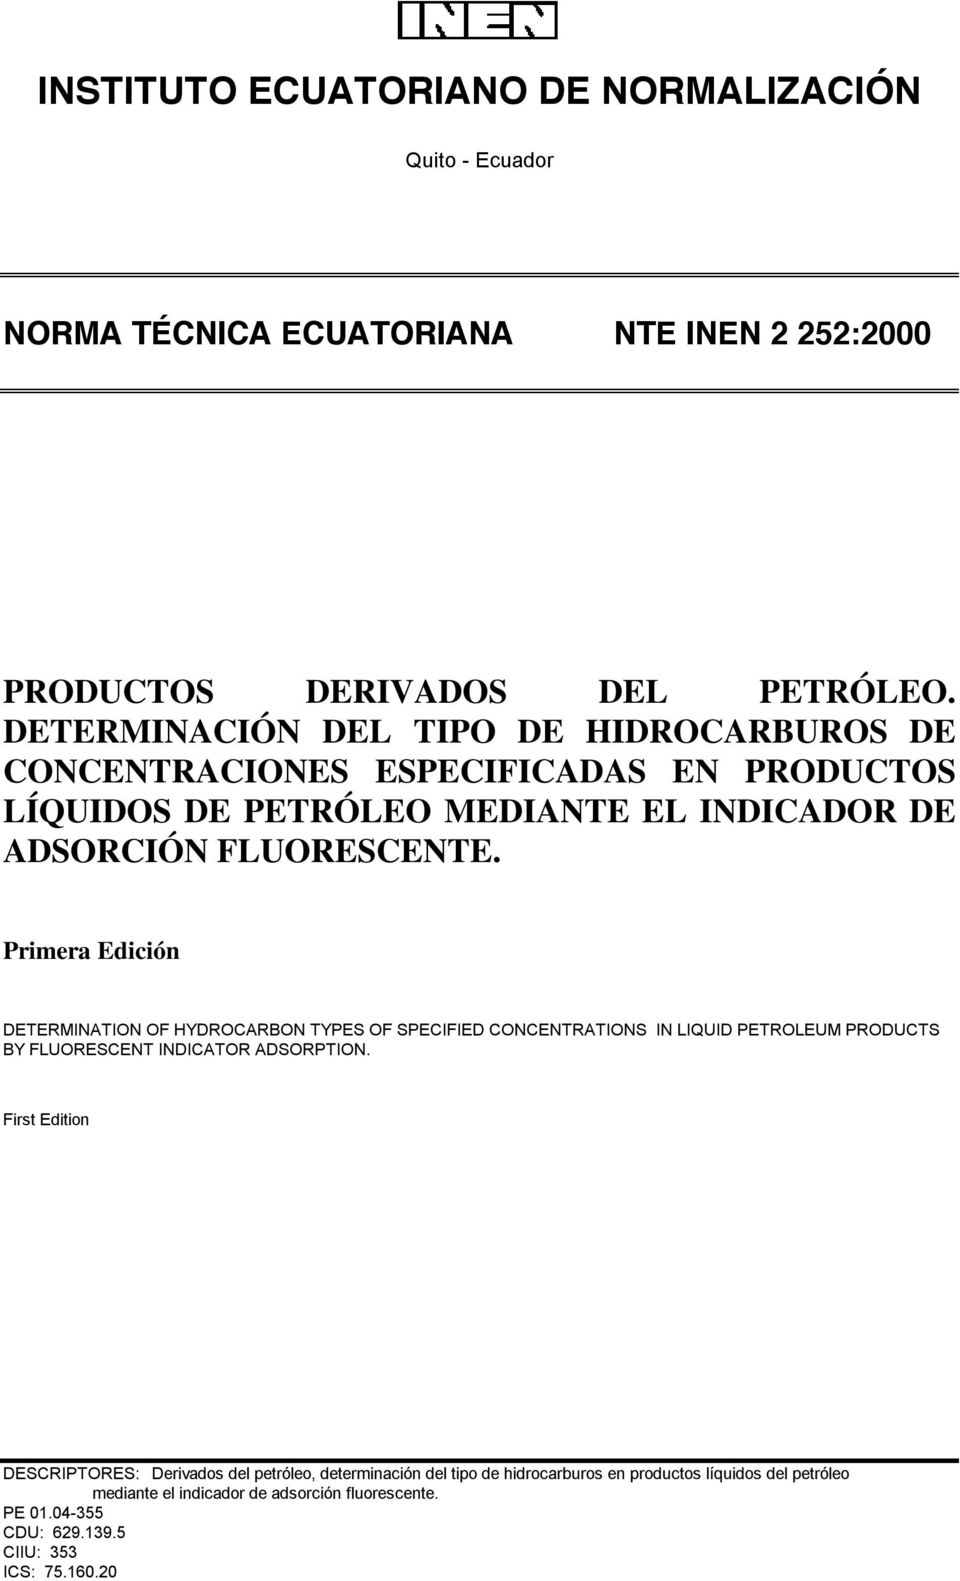 Primera Edición DETERMINATION OF HYDROCARBON TYPES OF SPECIFIED CONCENTRATIONS IN LIQUID PETROLEUM PRODUCTS BY FLUORESCENT INDICATOR ADSORPTION.